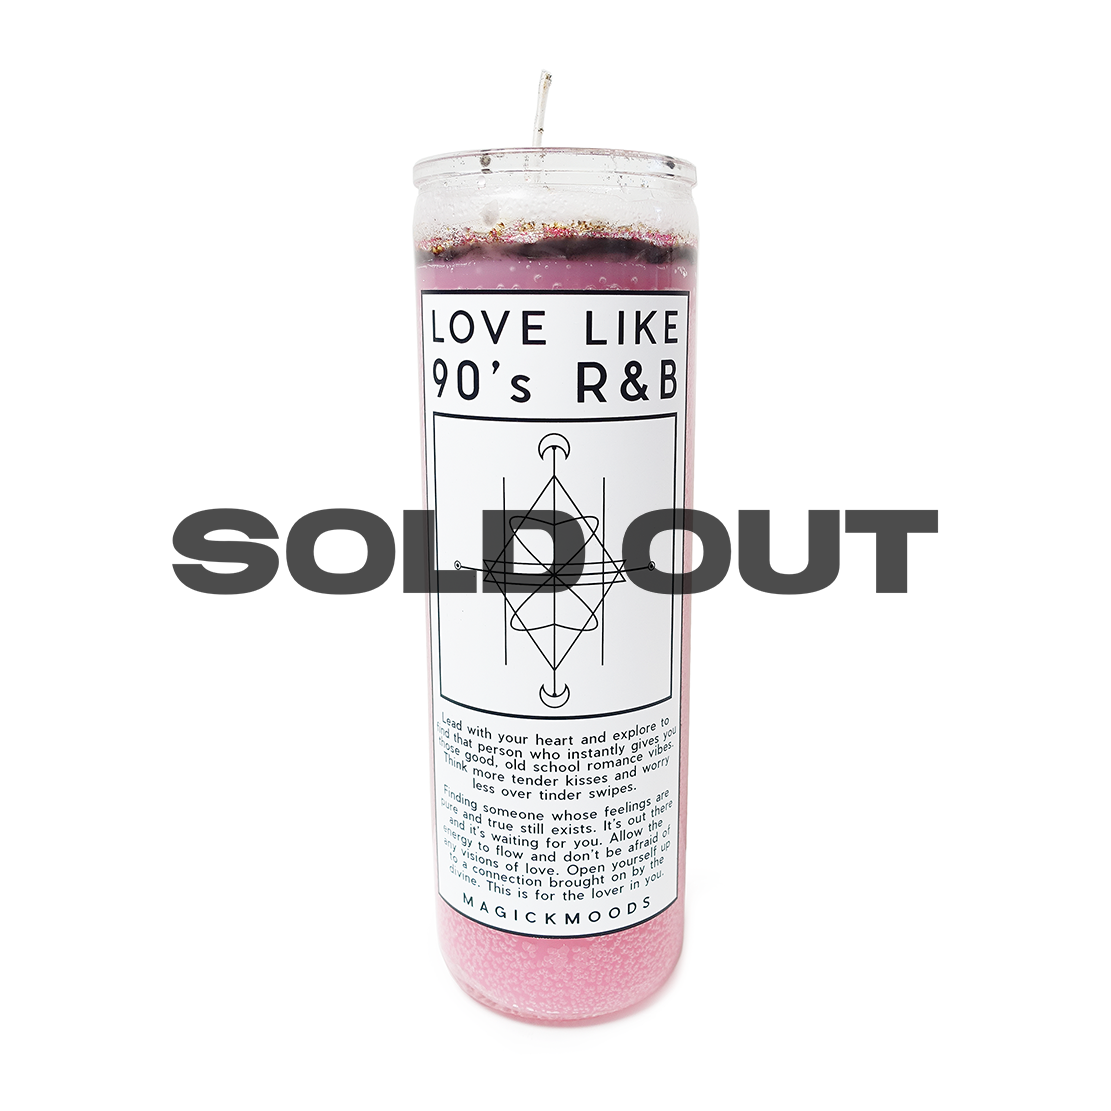 Love Like 90's R&B 7-Day Meditation Candle - PREORDER - Ships by 8/14